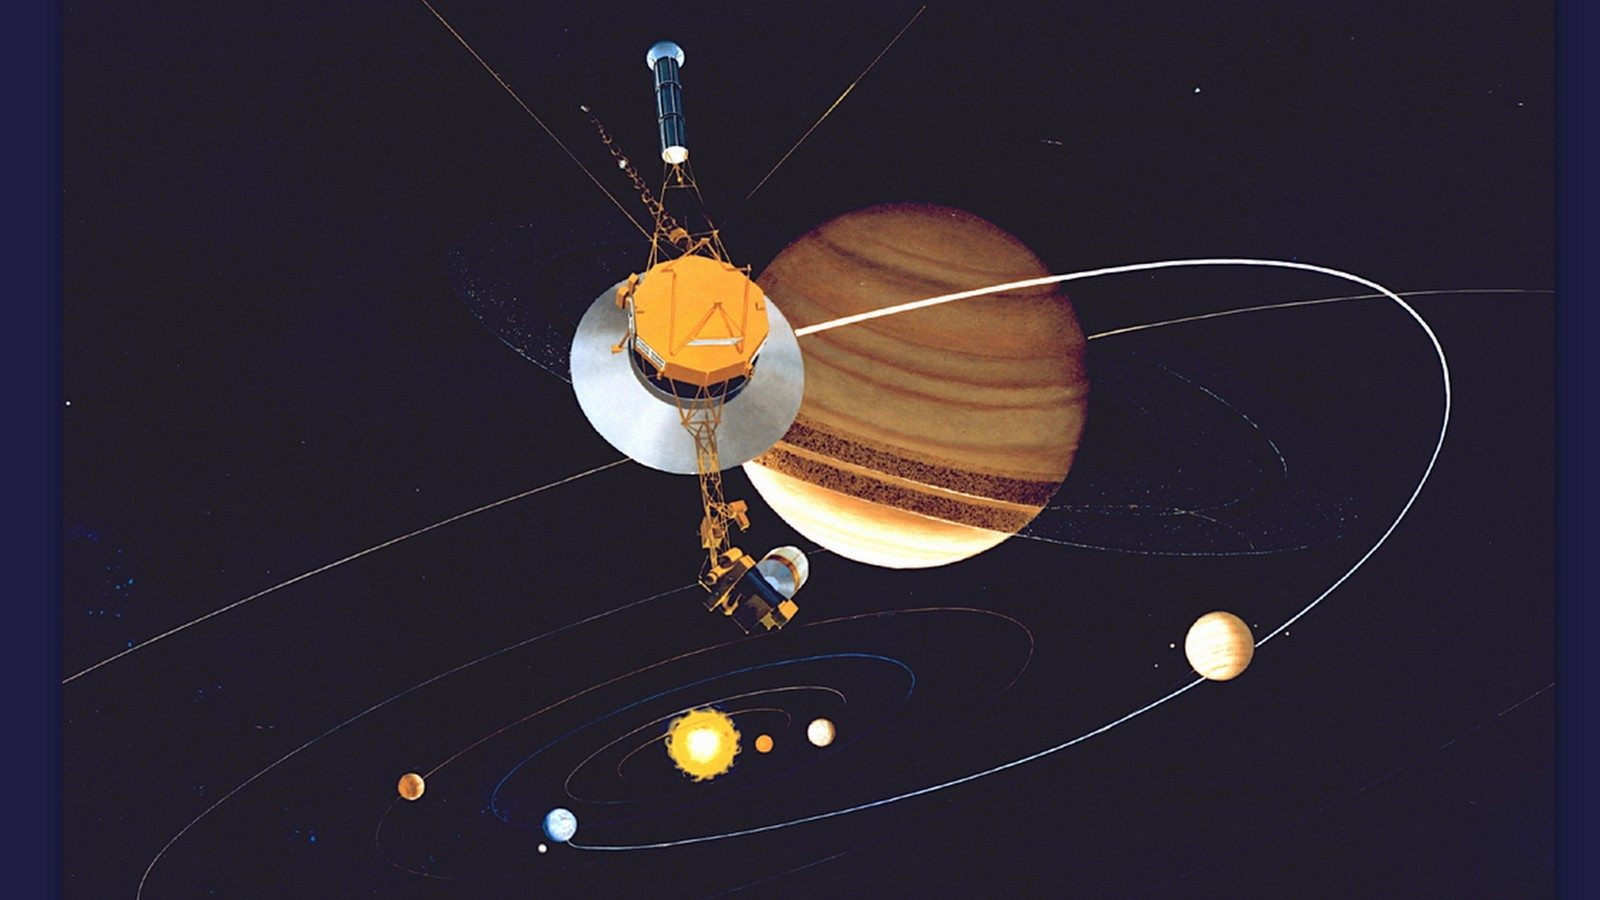 Image: Voyager mission and space probe within our solar system